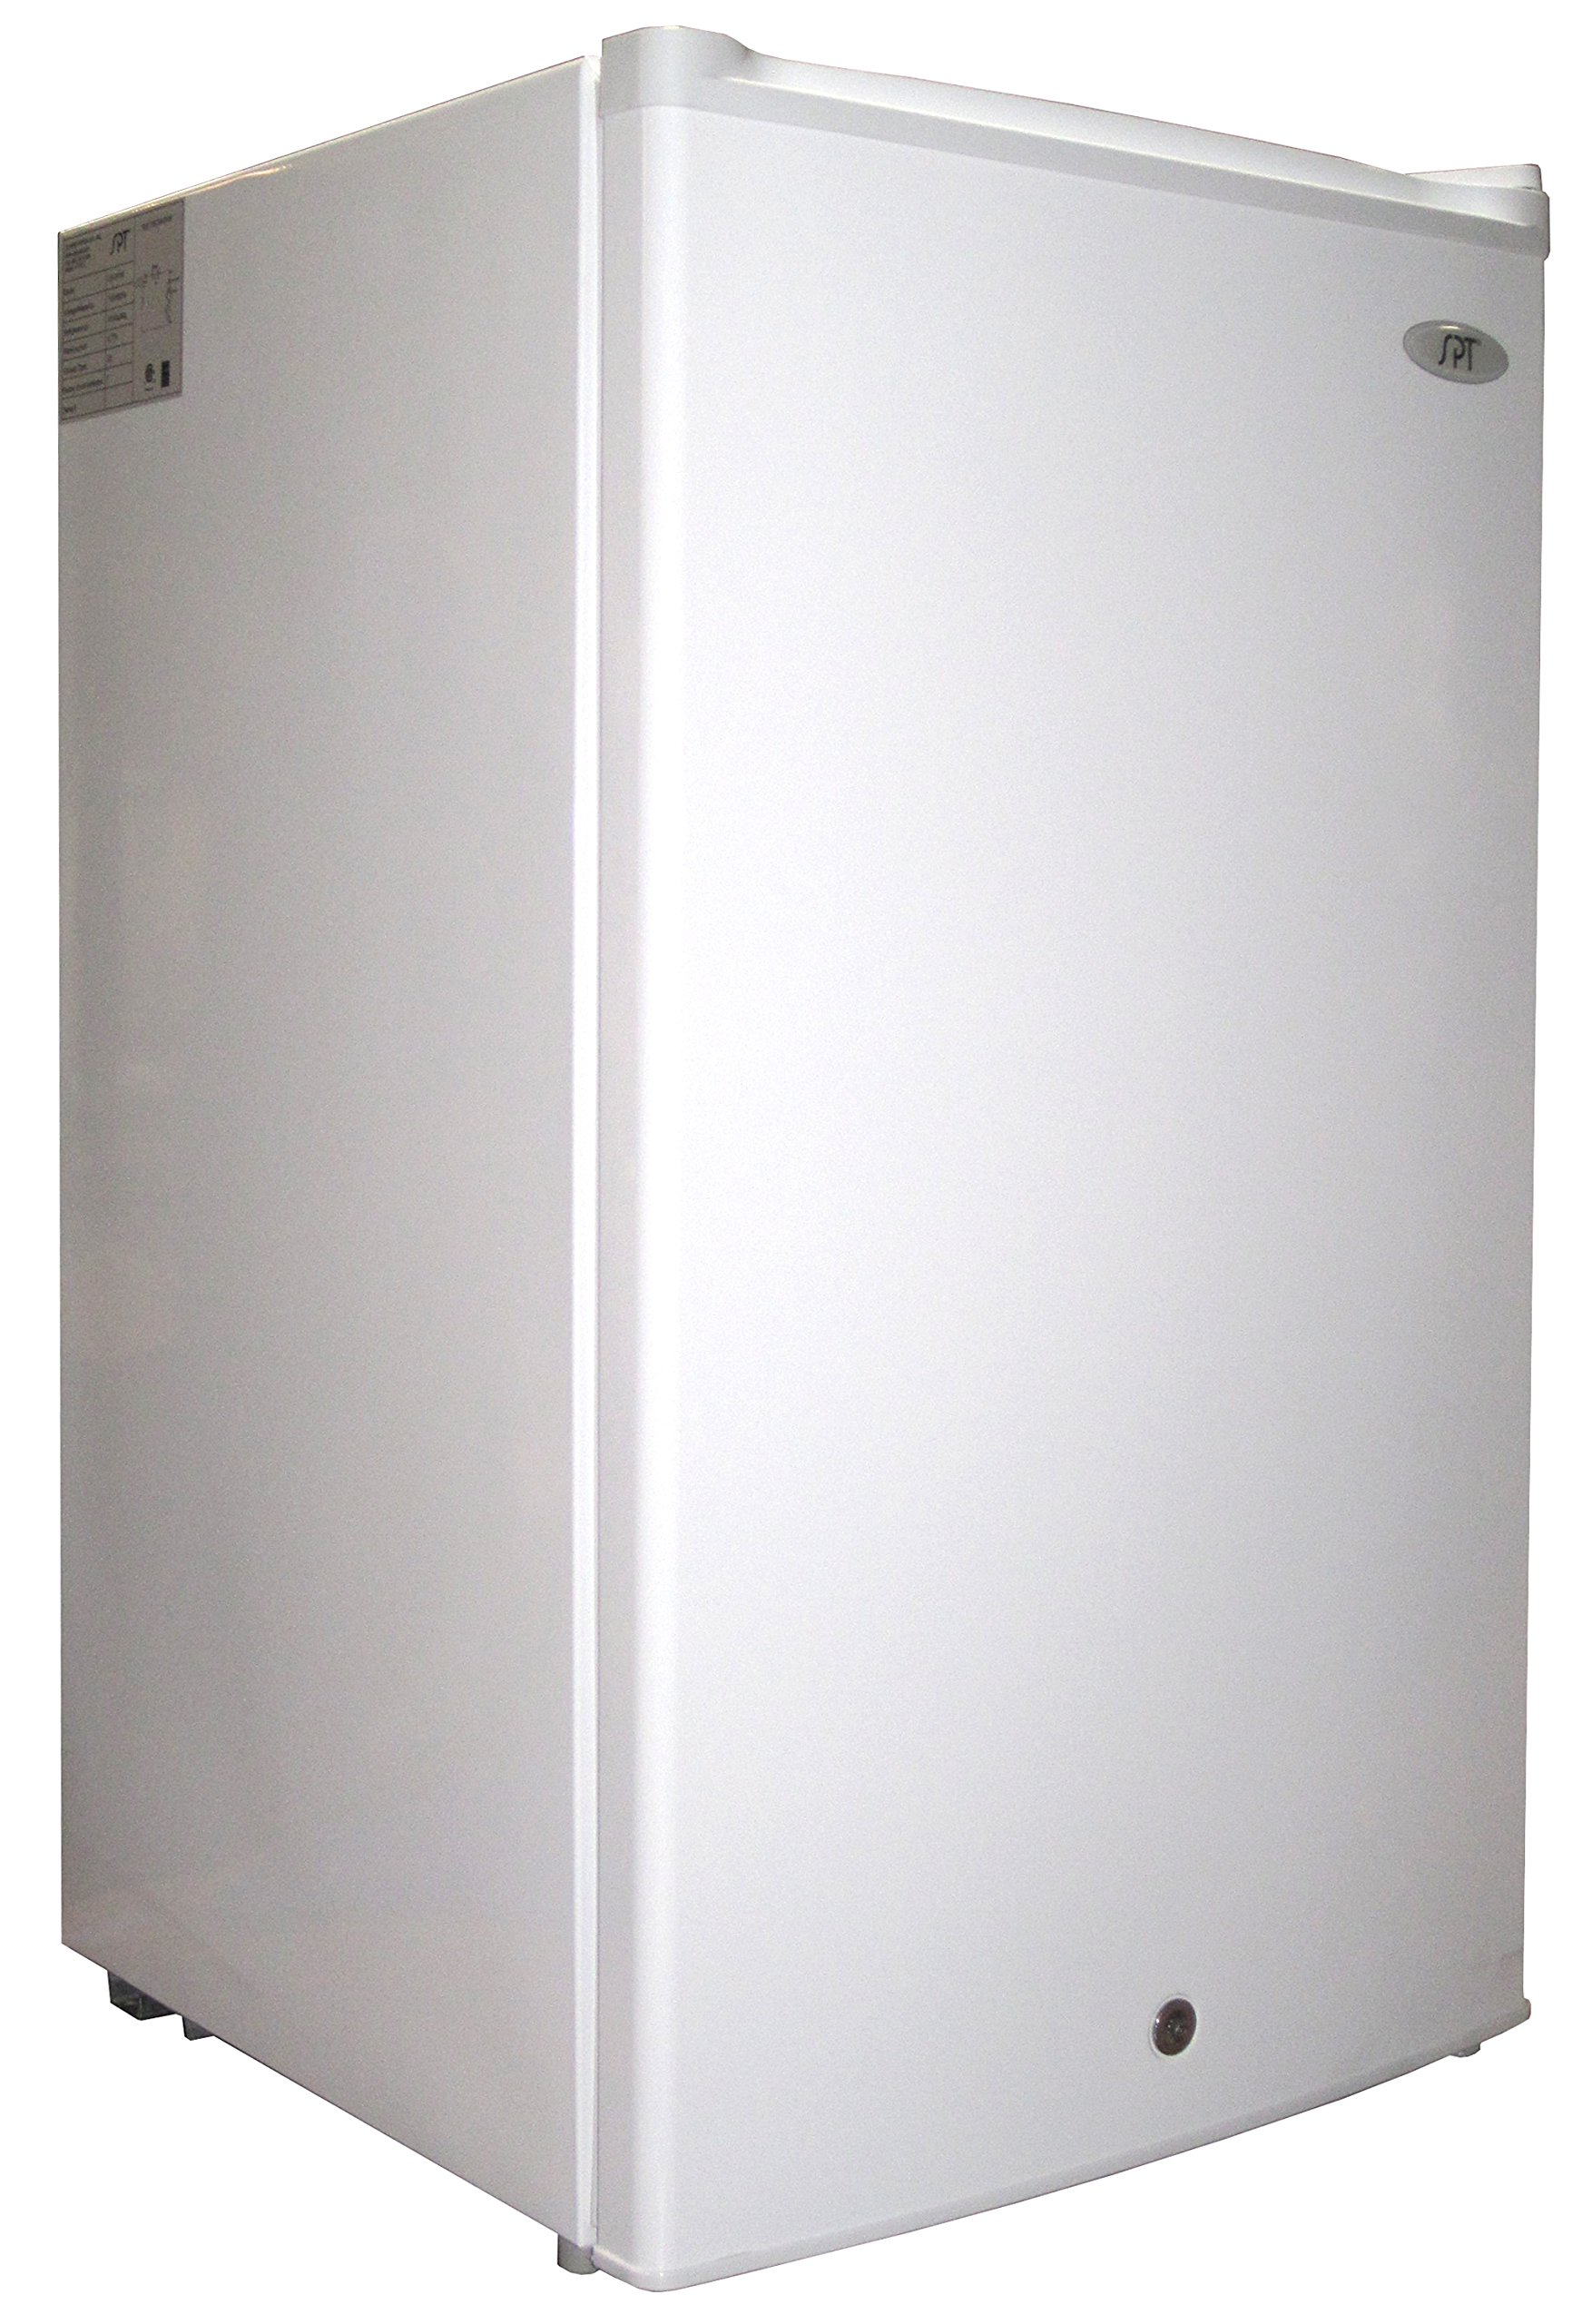 SPT UF-304W Energy Star Upright Freezer, 3.0 Cubic Feet, White by SPT